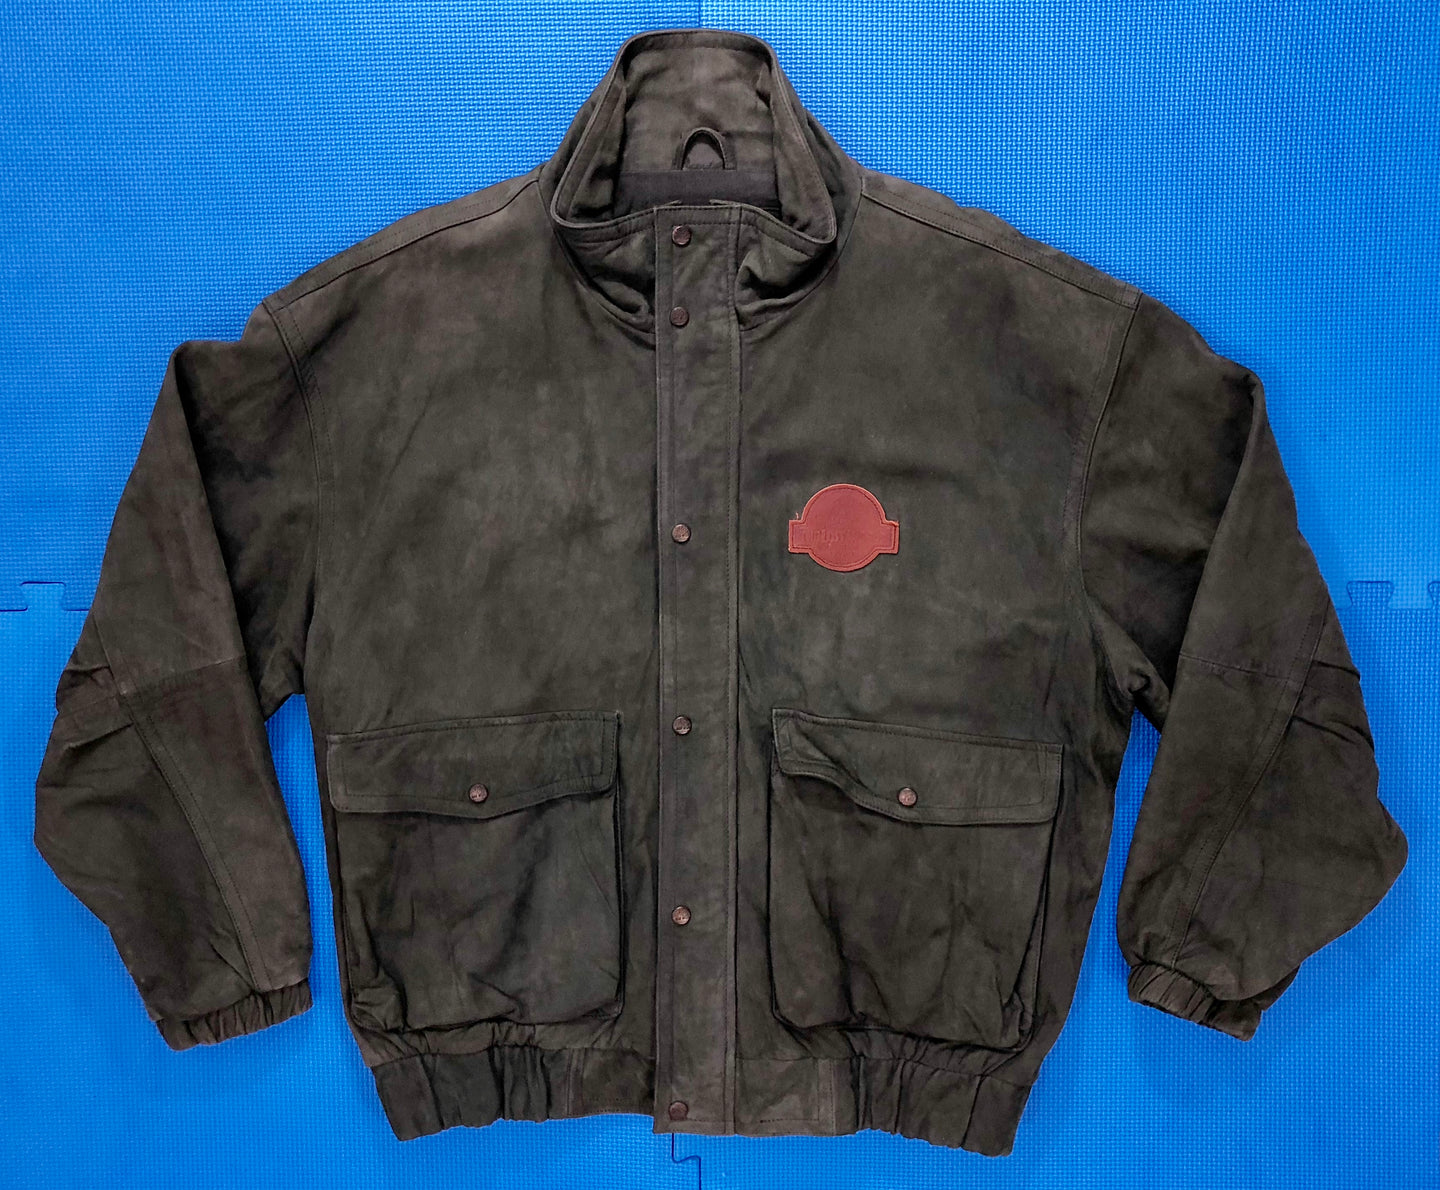 Vintage The Lost World: Jurassic Park Cast & Crew Jacket by Timberland